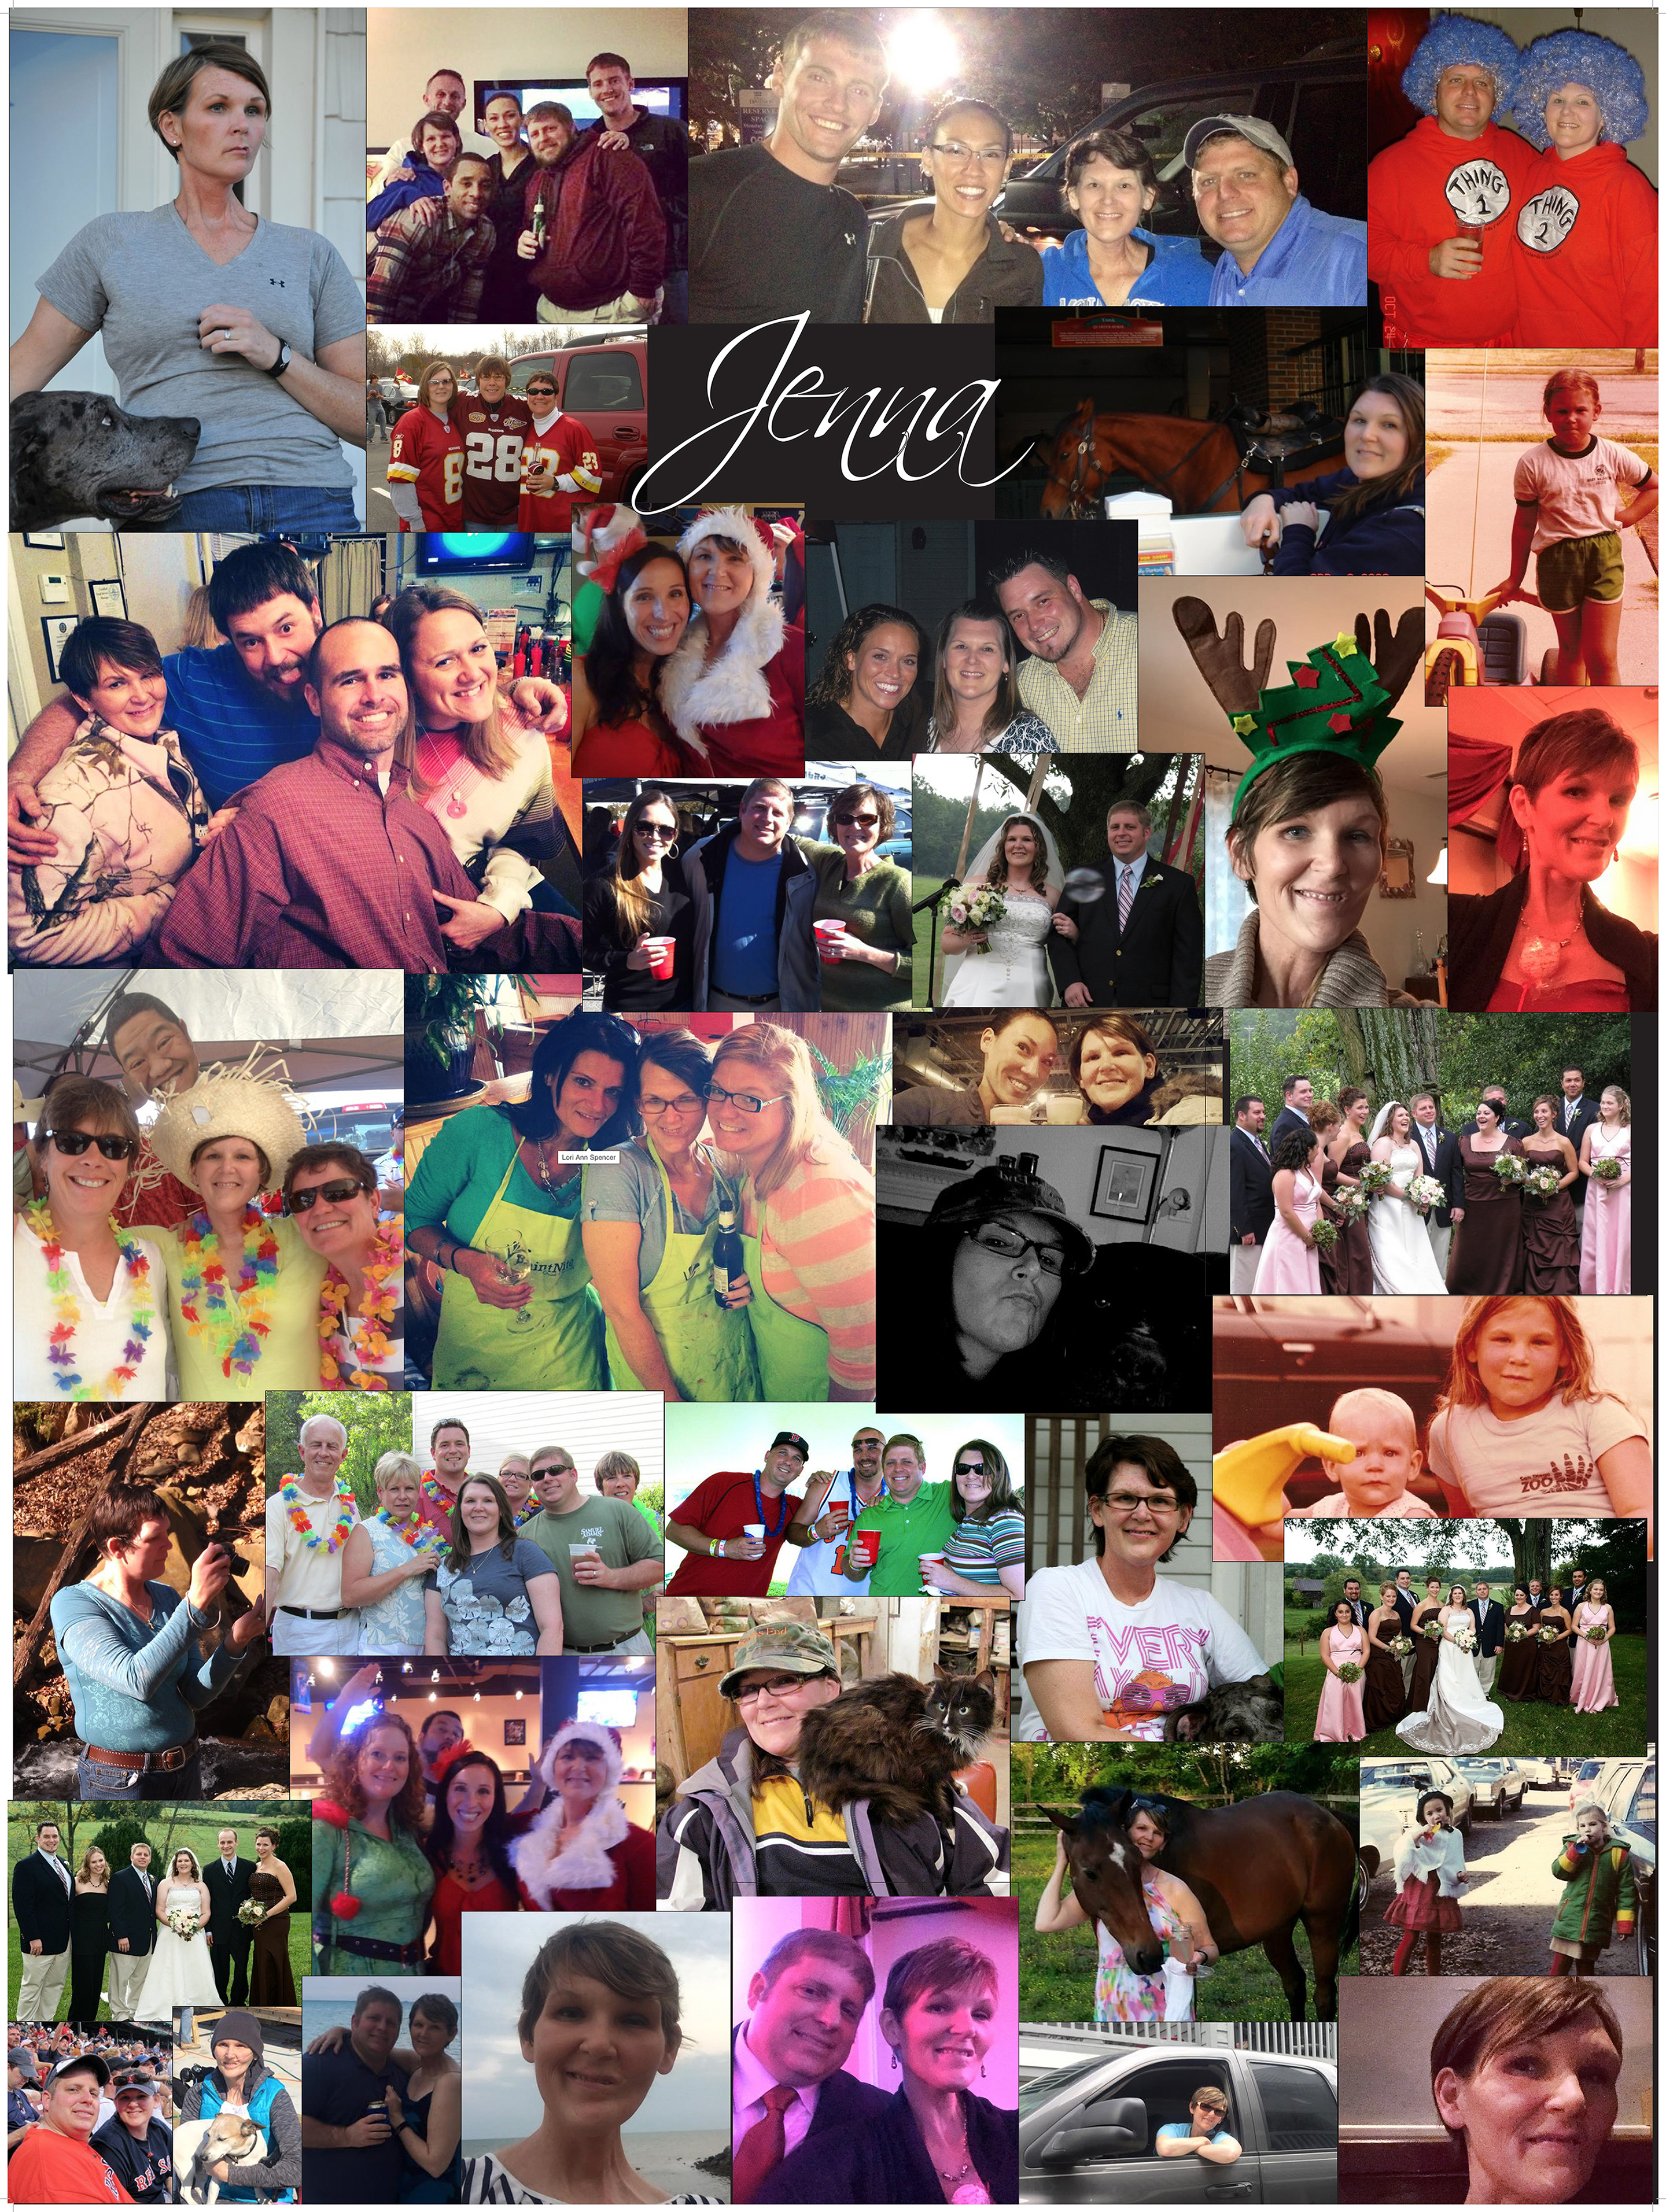 Bryan Agnello honors his late wife Jenna with this photo collage that is displayed at his Minuteman Press franchise in Virginia Beach, VA. http://www.minutemanpressfranchise.com